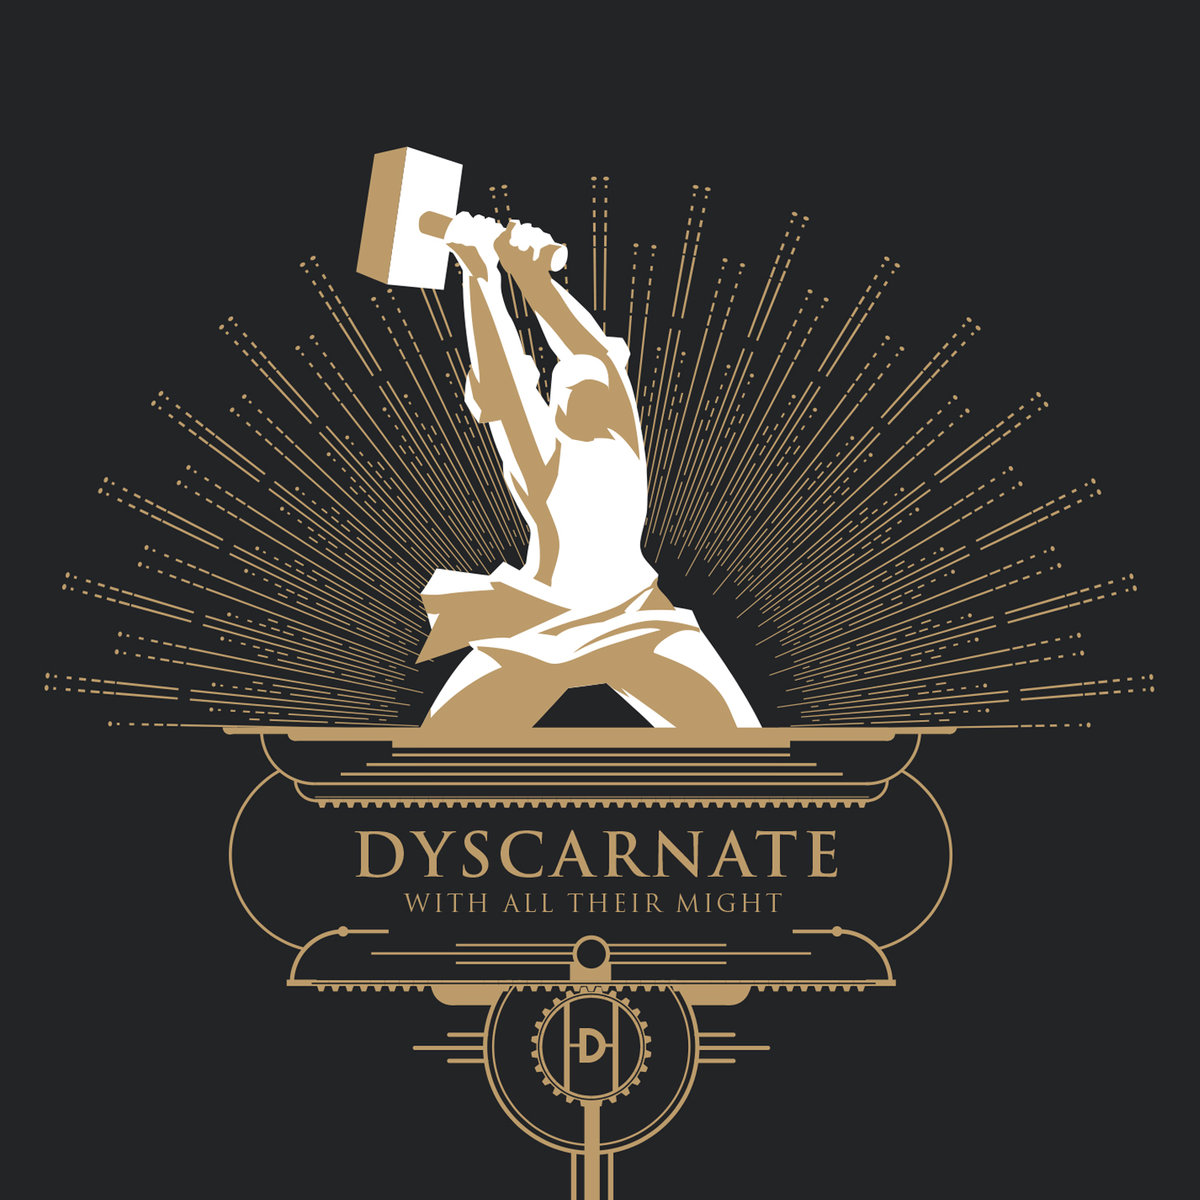 Dyscarnate – With All their Might Album Review